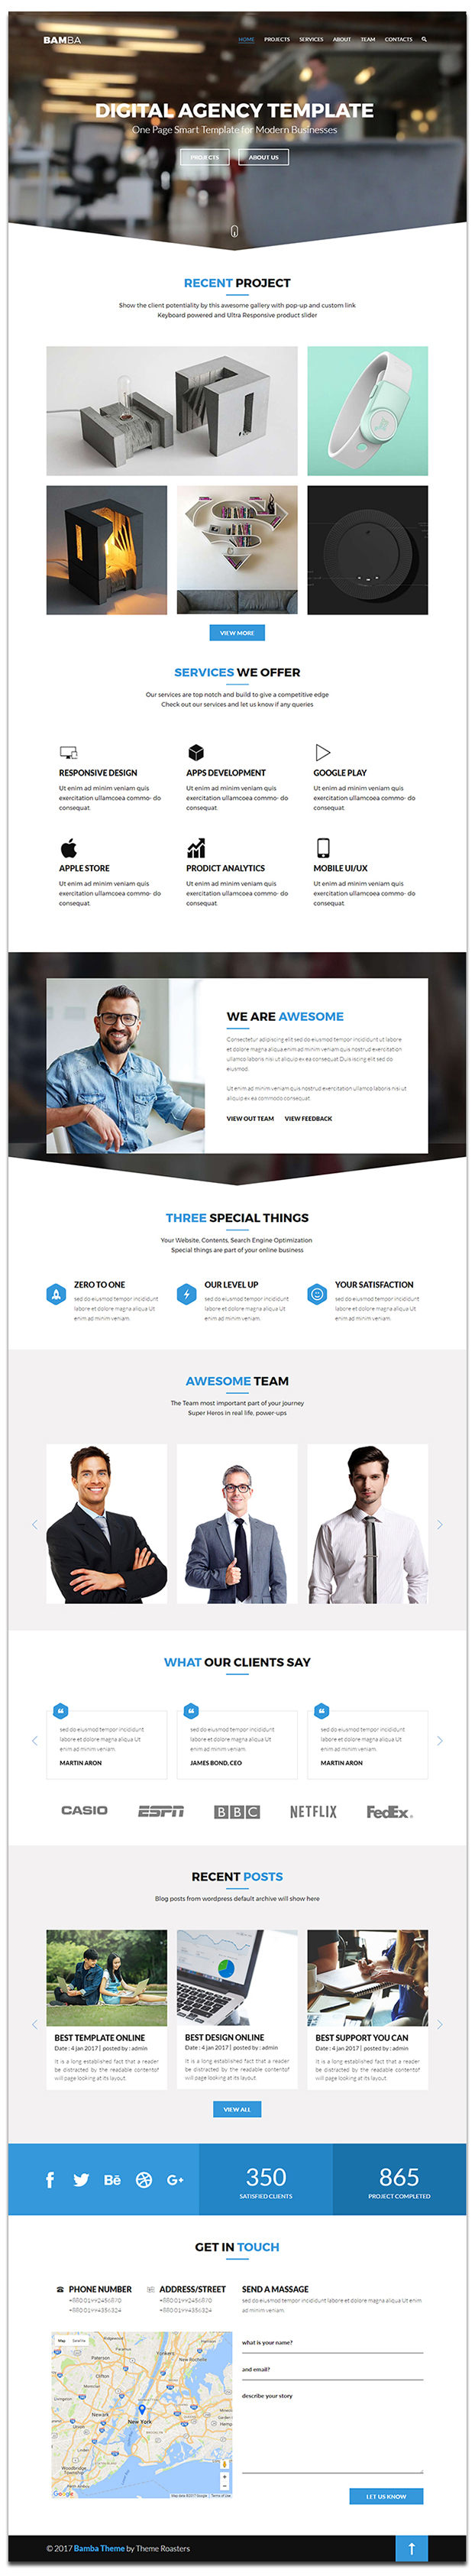 Bamba - One Page Clean Responsive Business HTML5 Template - 3